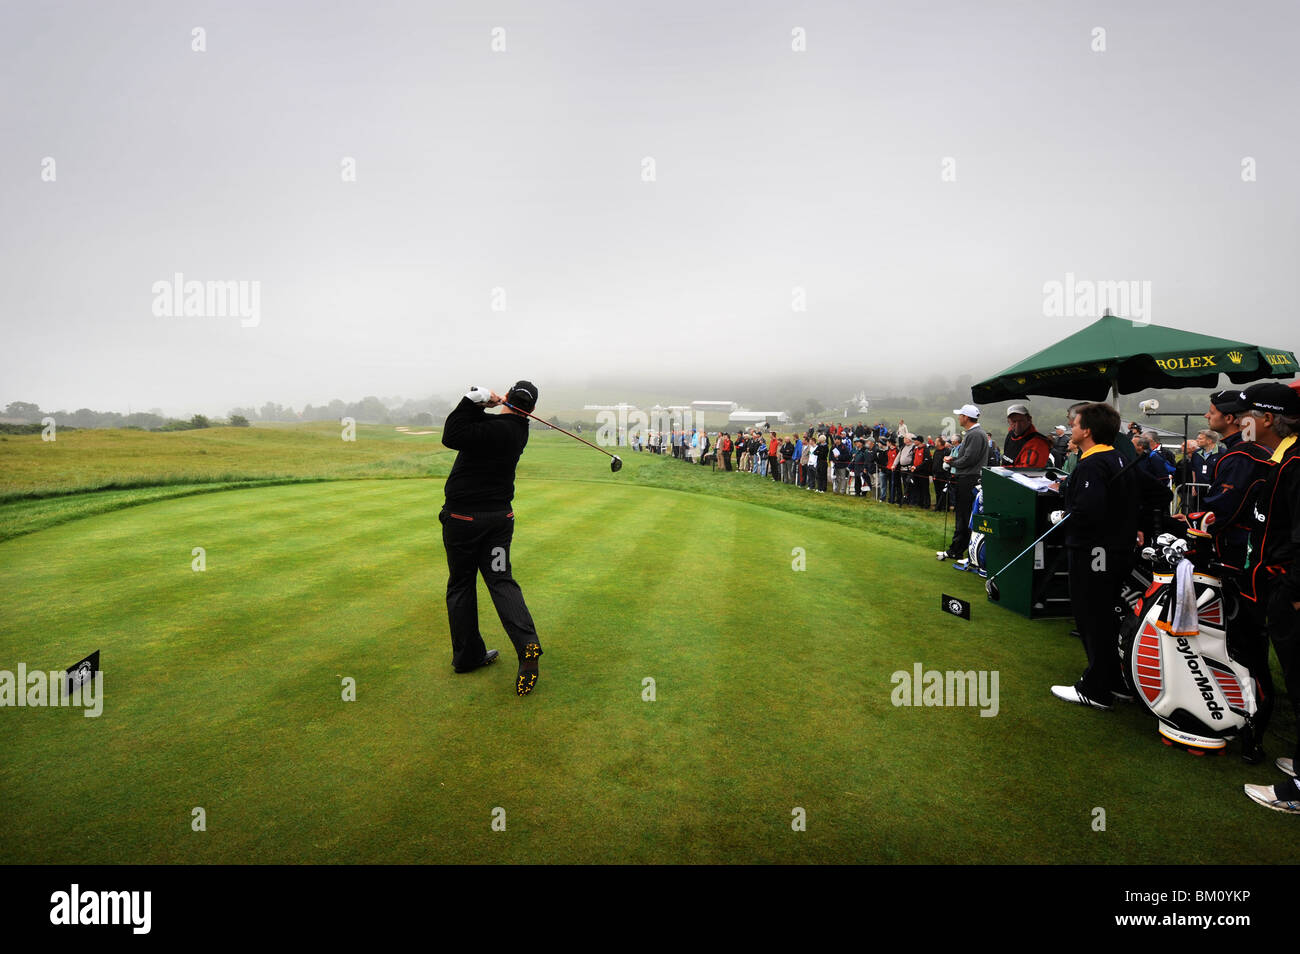 The Celtic Manor Wales Open 2008 - David Dixon of England plays the first shot of the competition 29 May 2008 - Stock Image